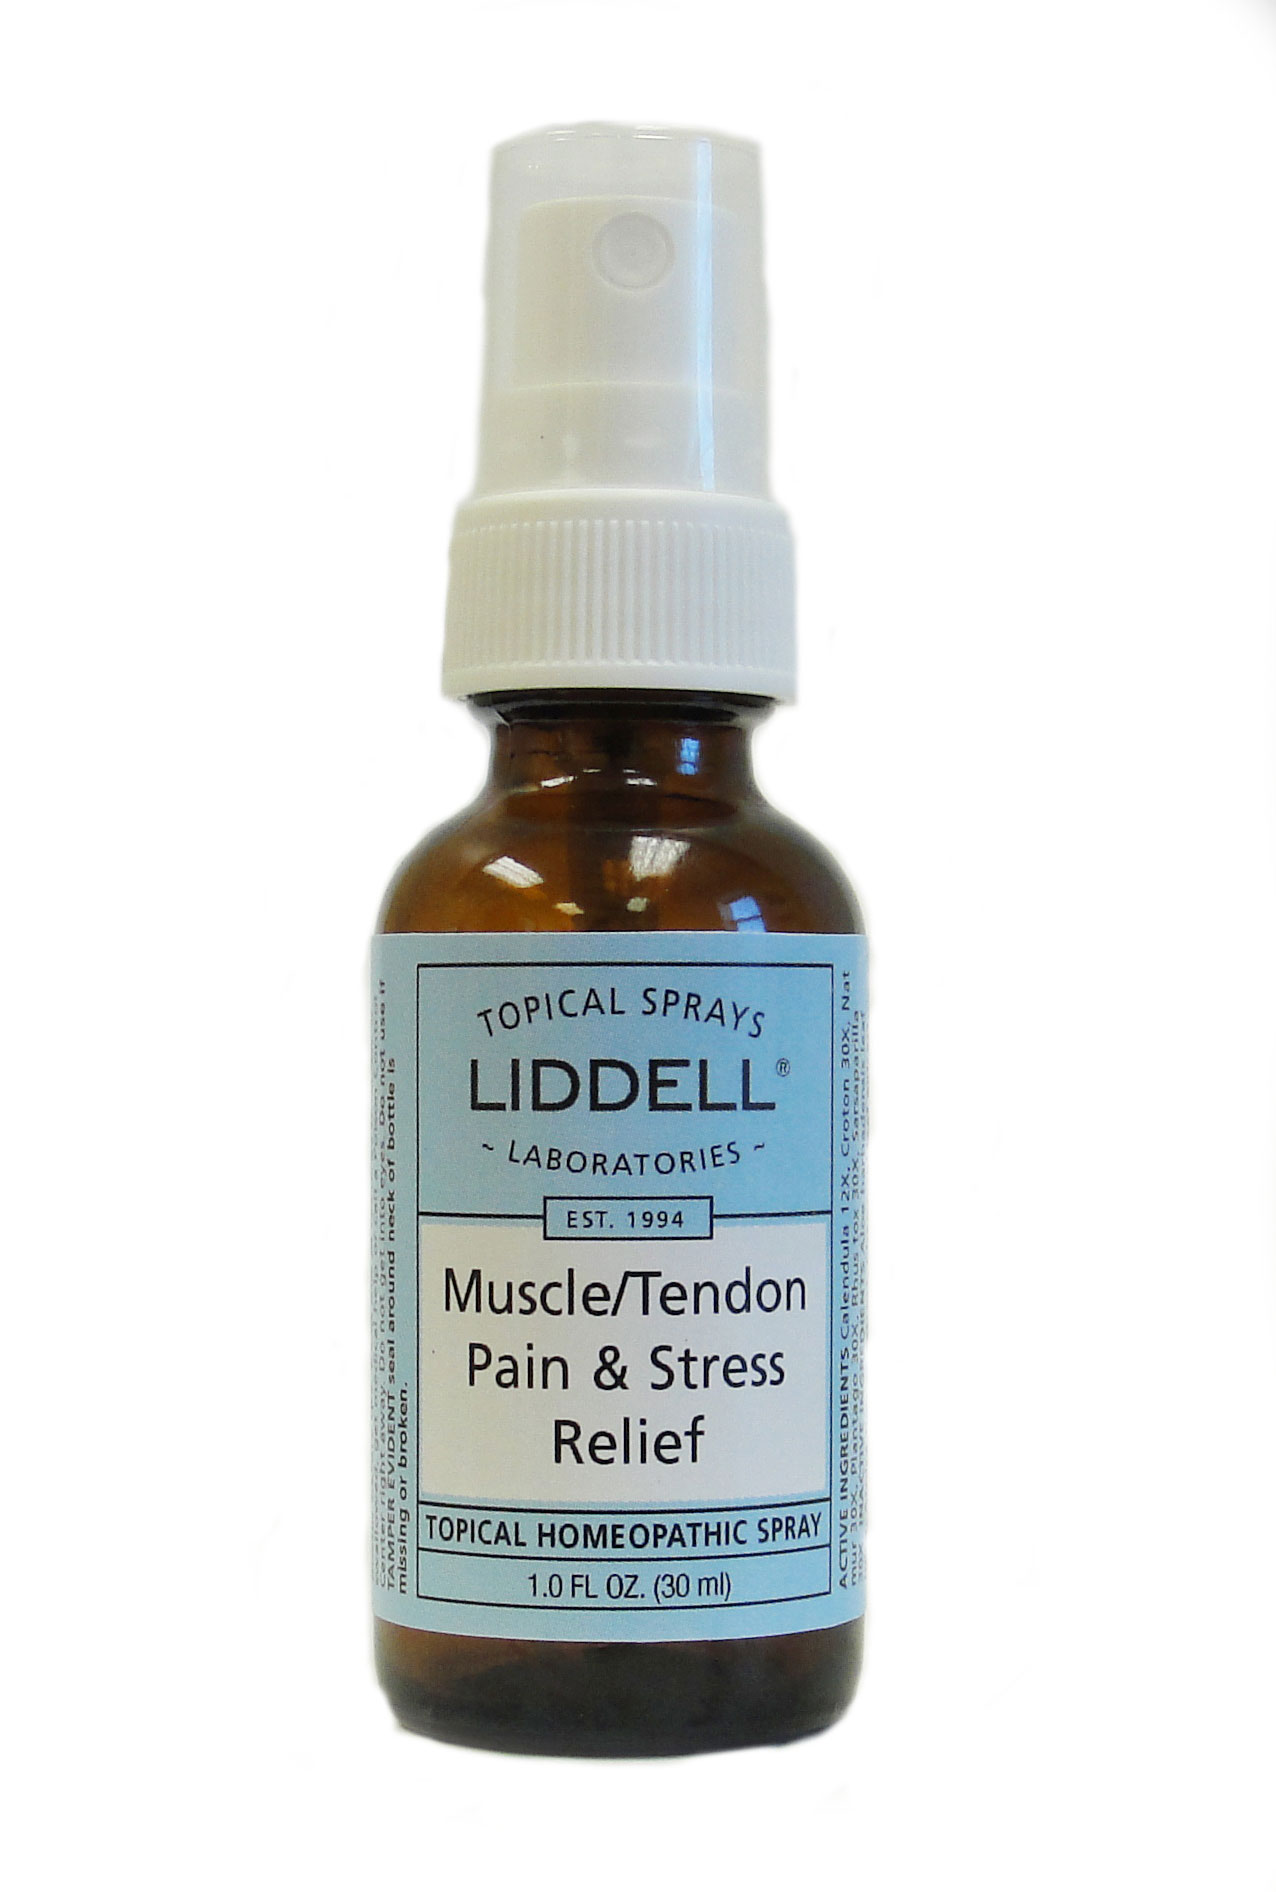 Muscle/Tendon Pain & Stress Relief